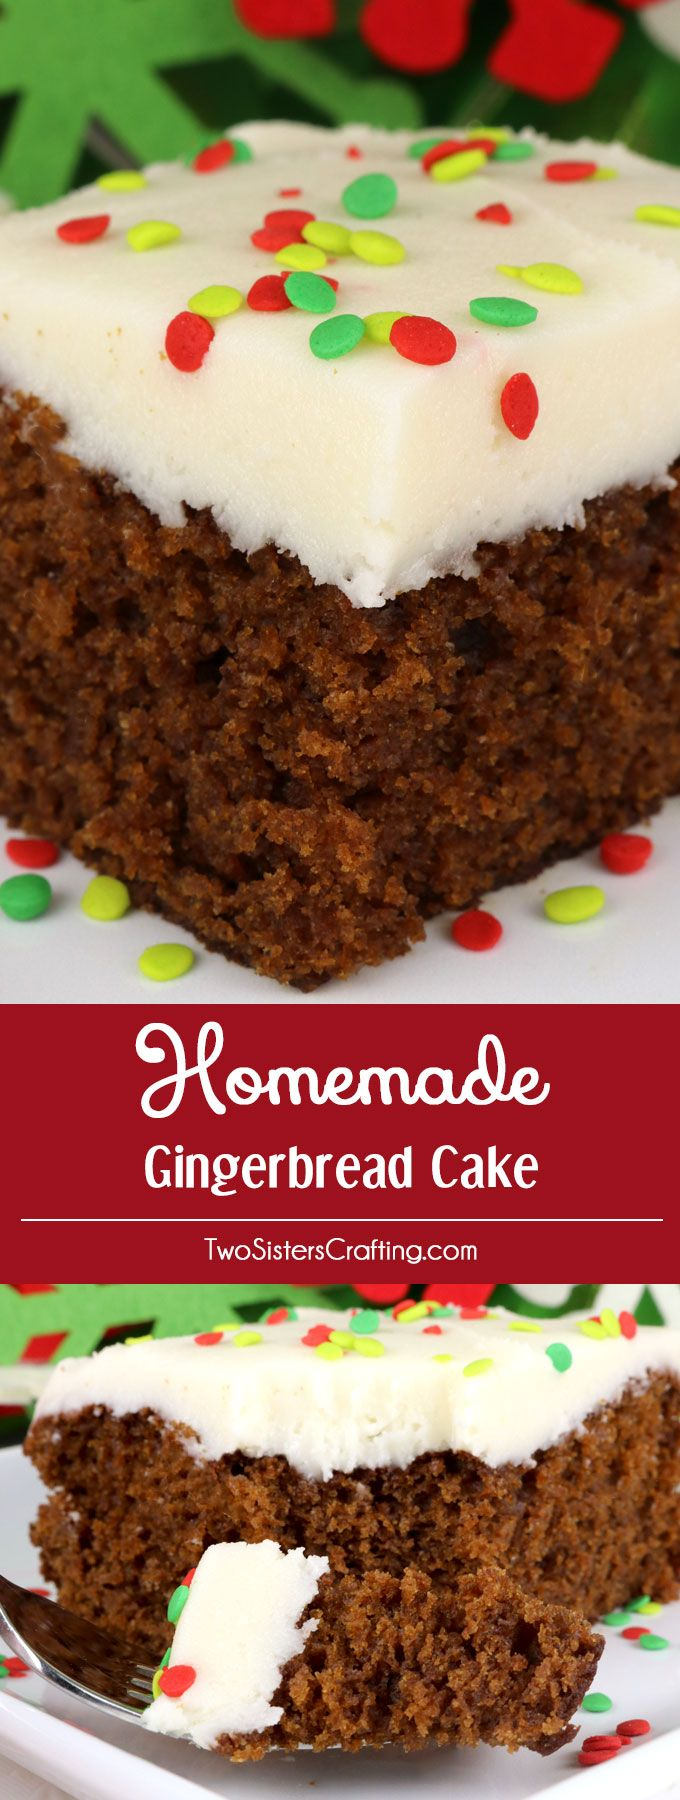 Homemade Gingerbread Cake -a classic Christmas cake recipe topped with our super delicious Best Cream Cheese Frosting and boy is it easy to make.  Your family, friends and Holiday party guests will be impressed when you serve this super yummy Christmas dessert. What a fun and delicious Gingerbread Christmas Treat. Pin this easy Christmas Dessert for later and follow us for more great Christmas Food ideas. #ChristmasCake #ChristmasDesserts #ChristmasTreats #Gingerbread